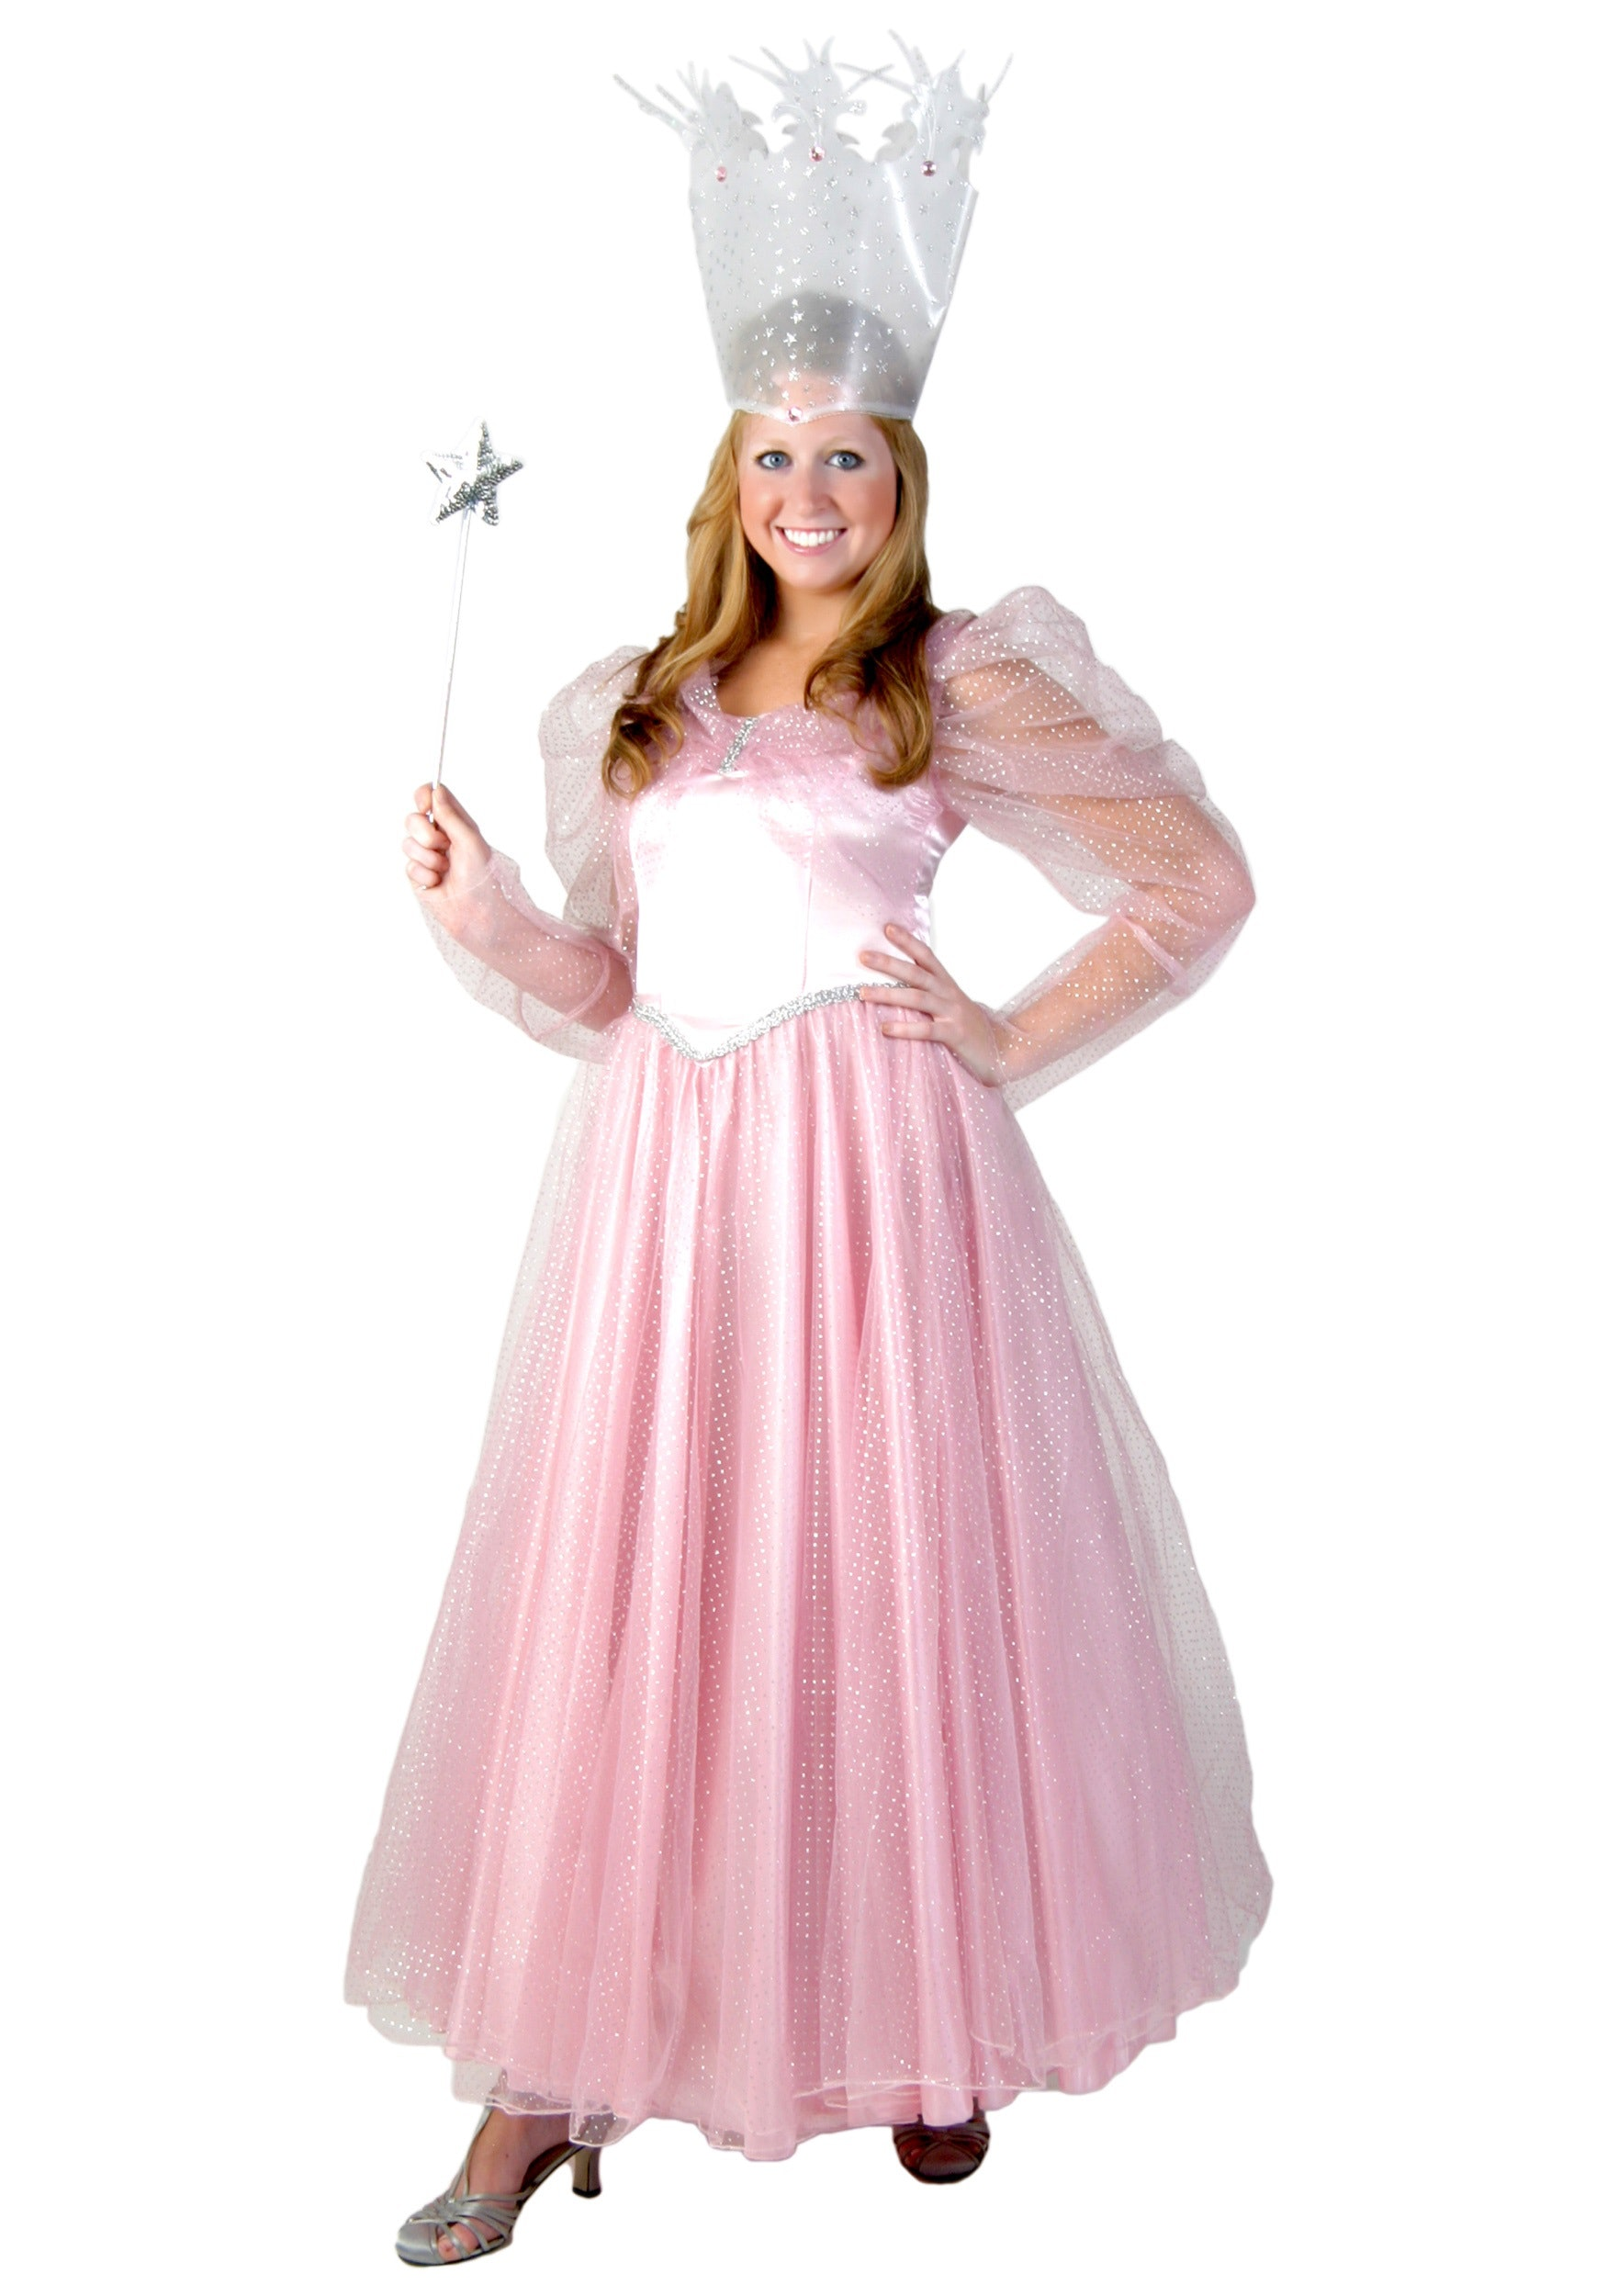 19 plus size halloween costumes in 5x, 6x, & higher because